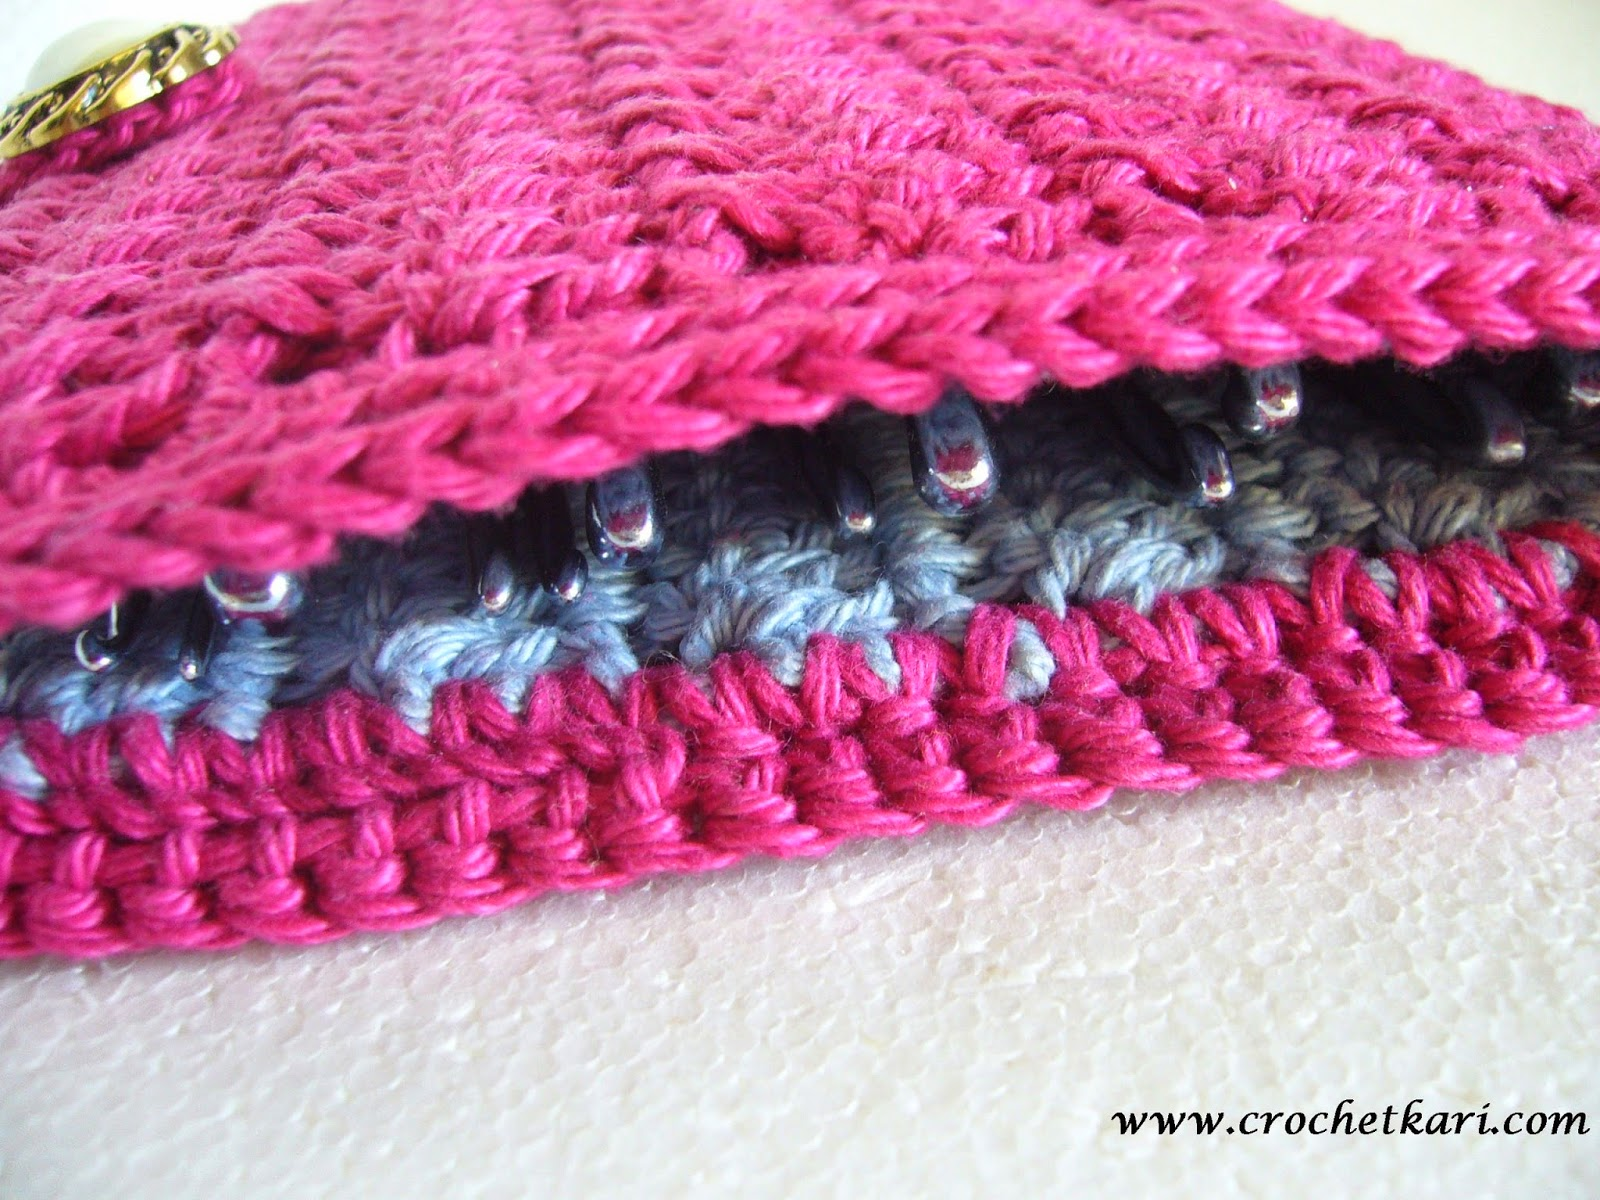 Crochet Patterns K Hook : ... pattern . Do give it a try along with the other fantastic patterns by